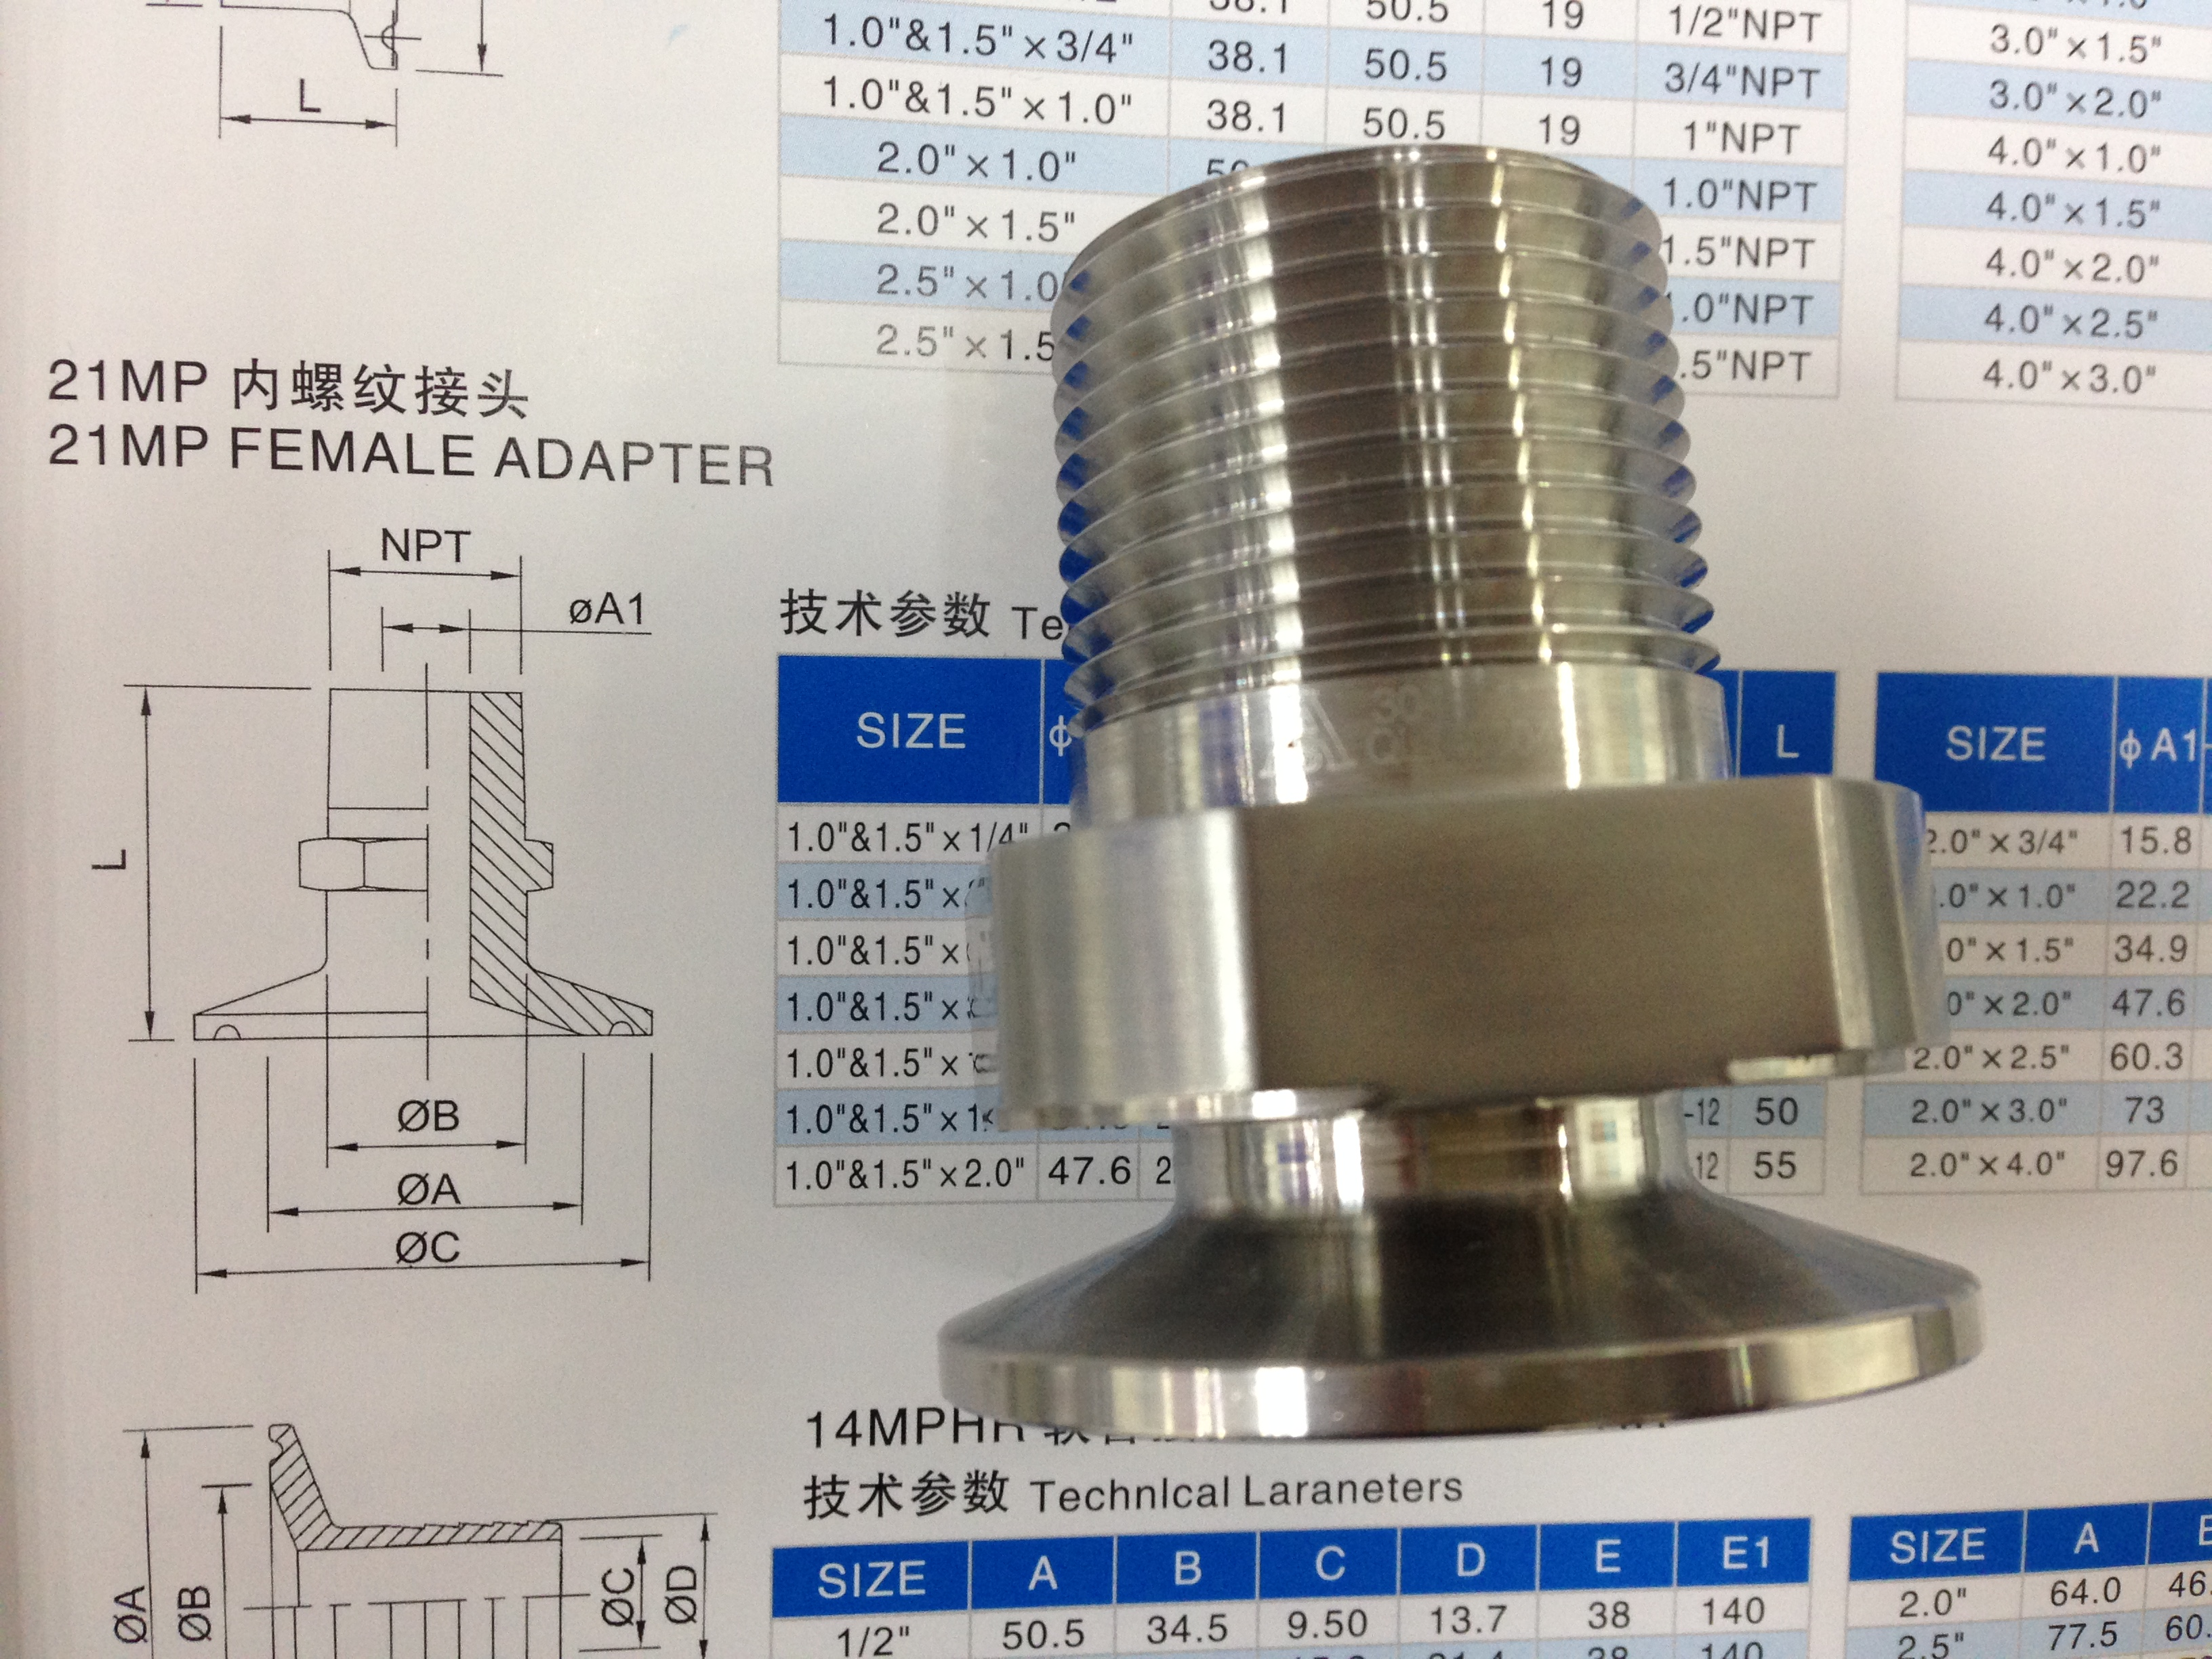 Thread hose adapter